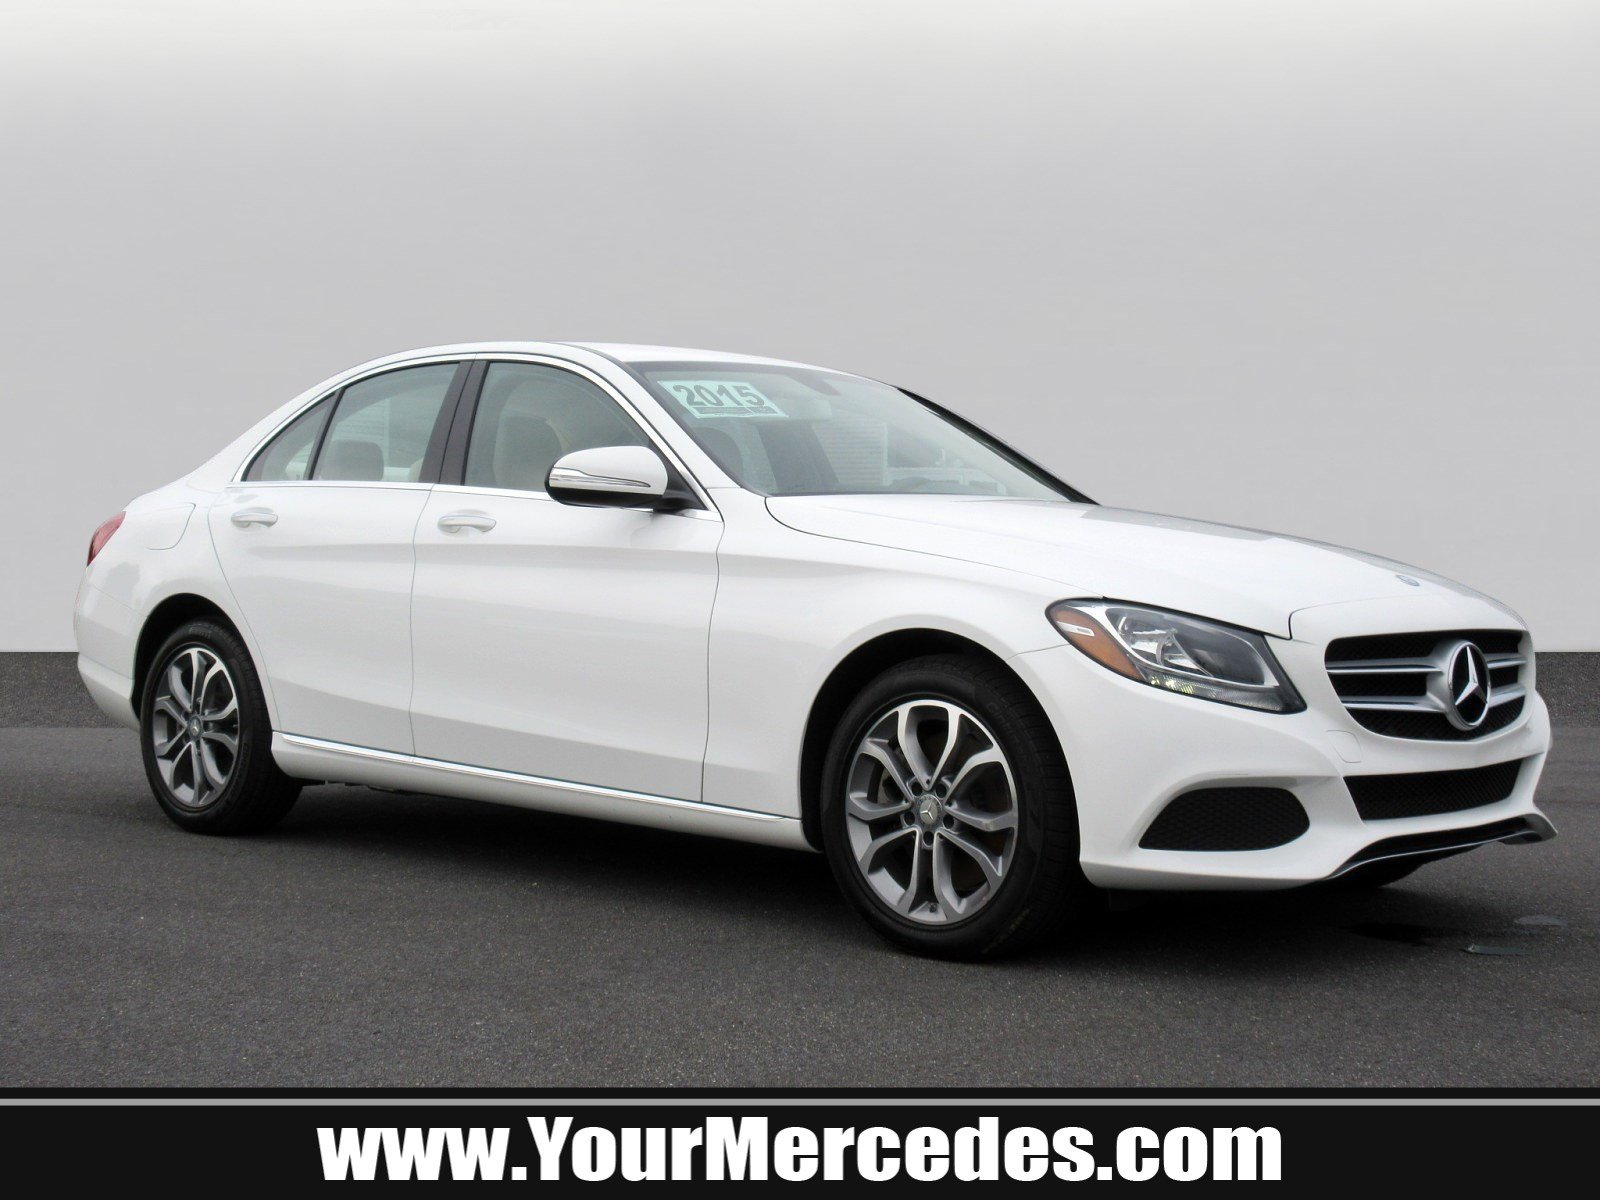 Pre Owned 2015 Mercedes Benz C Class C 300 SEDAN in Fort Washington